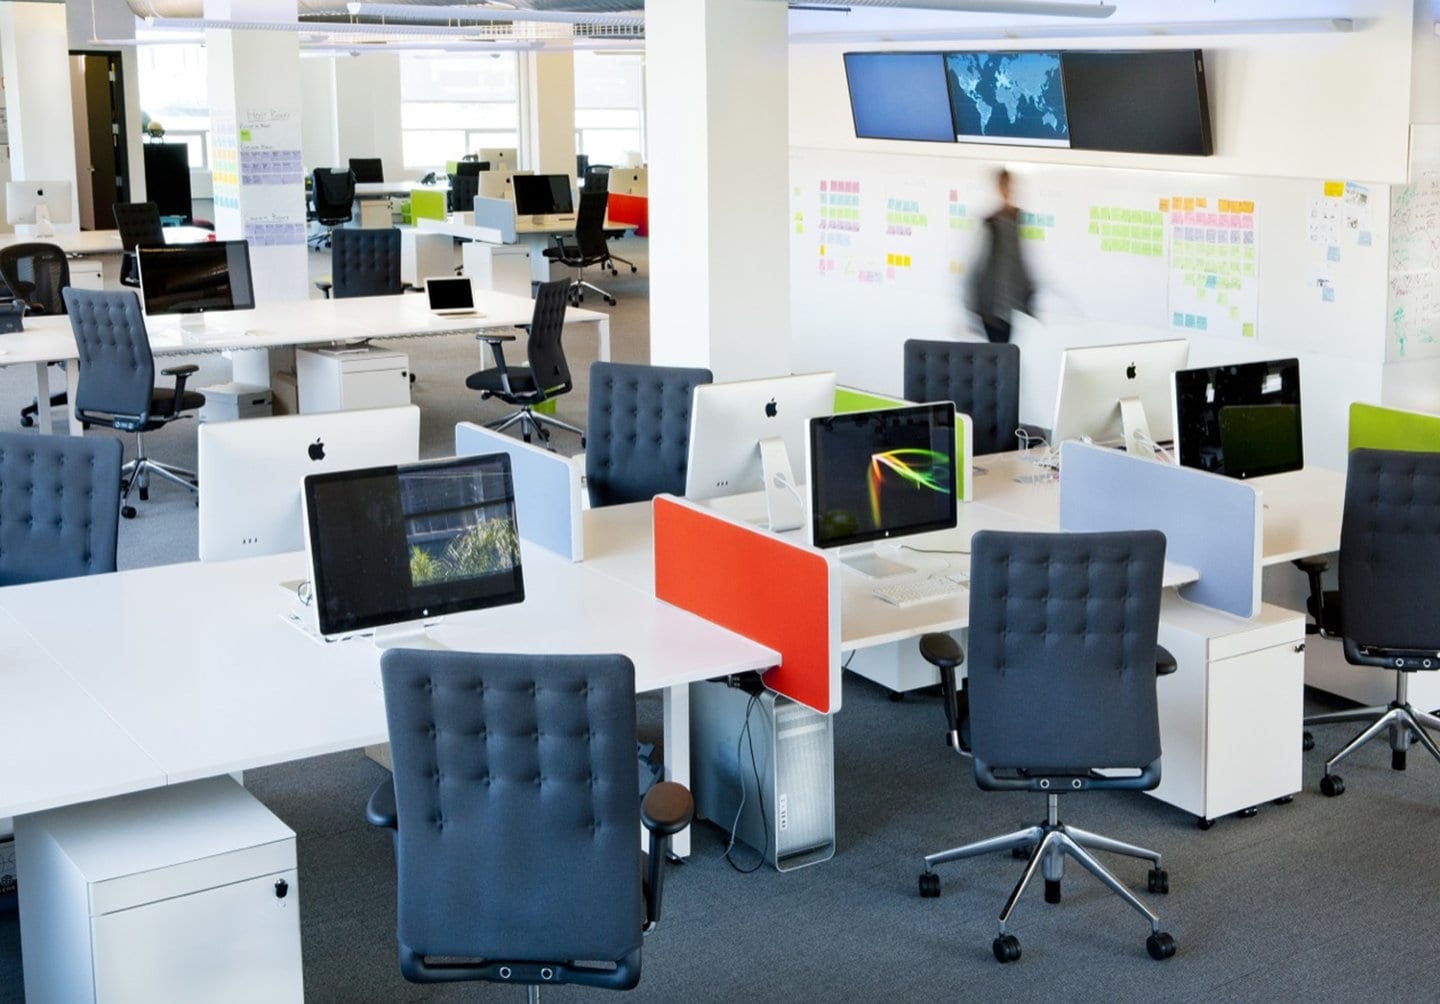 airbnb cool office design office interiors open plan workstations taks chairs airbnb cool office design